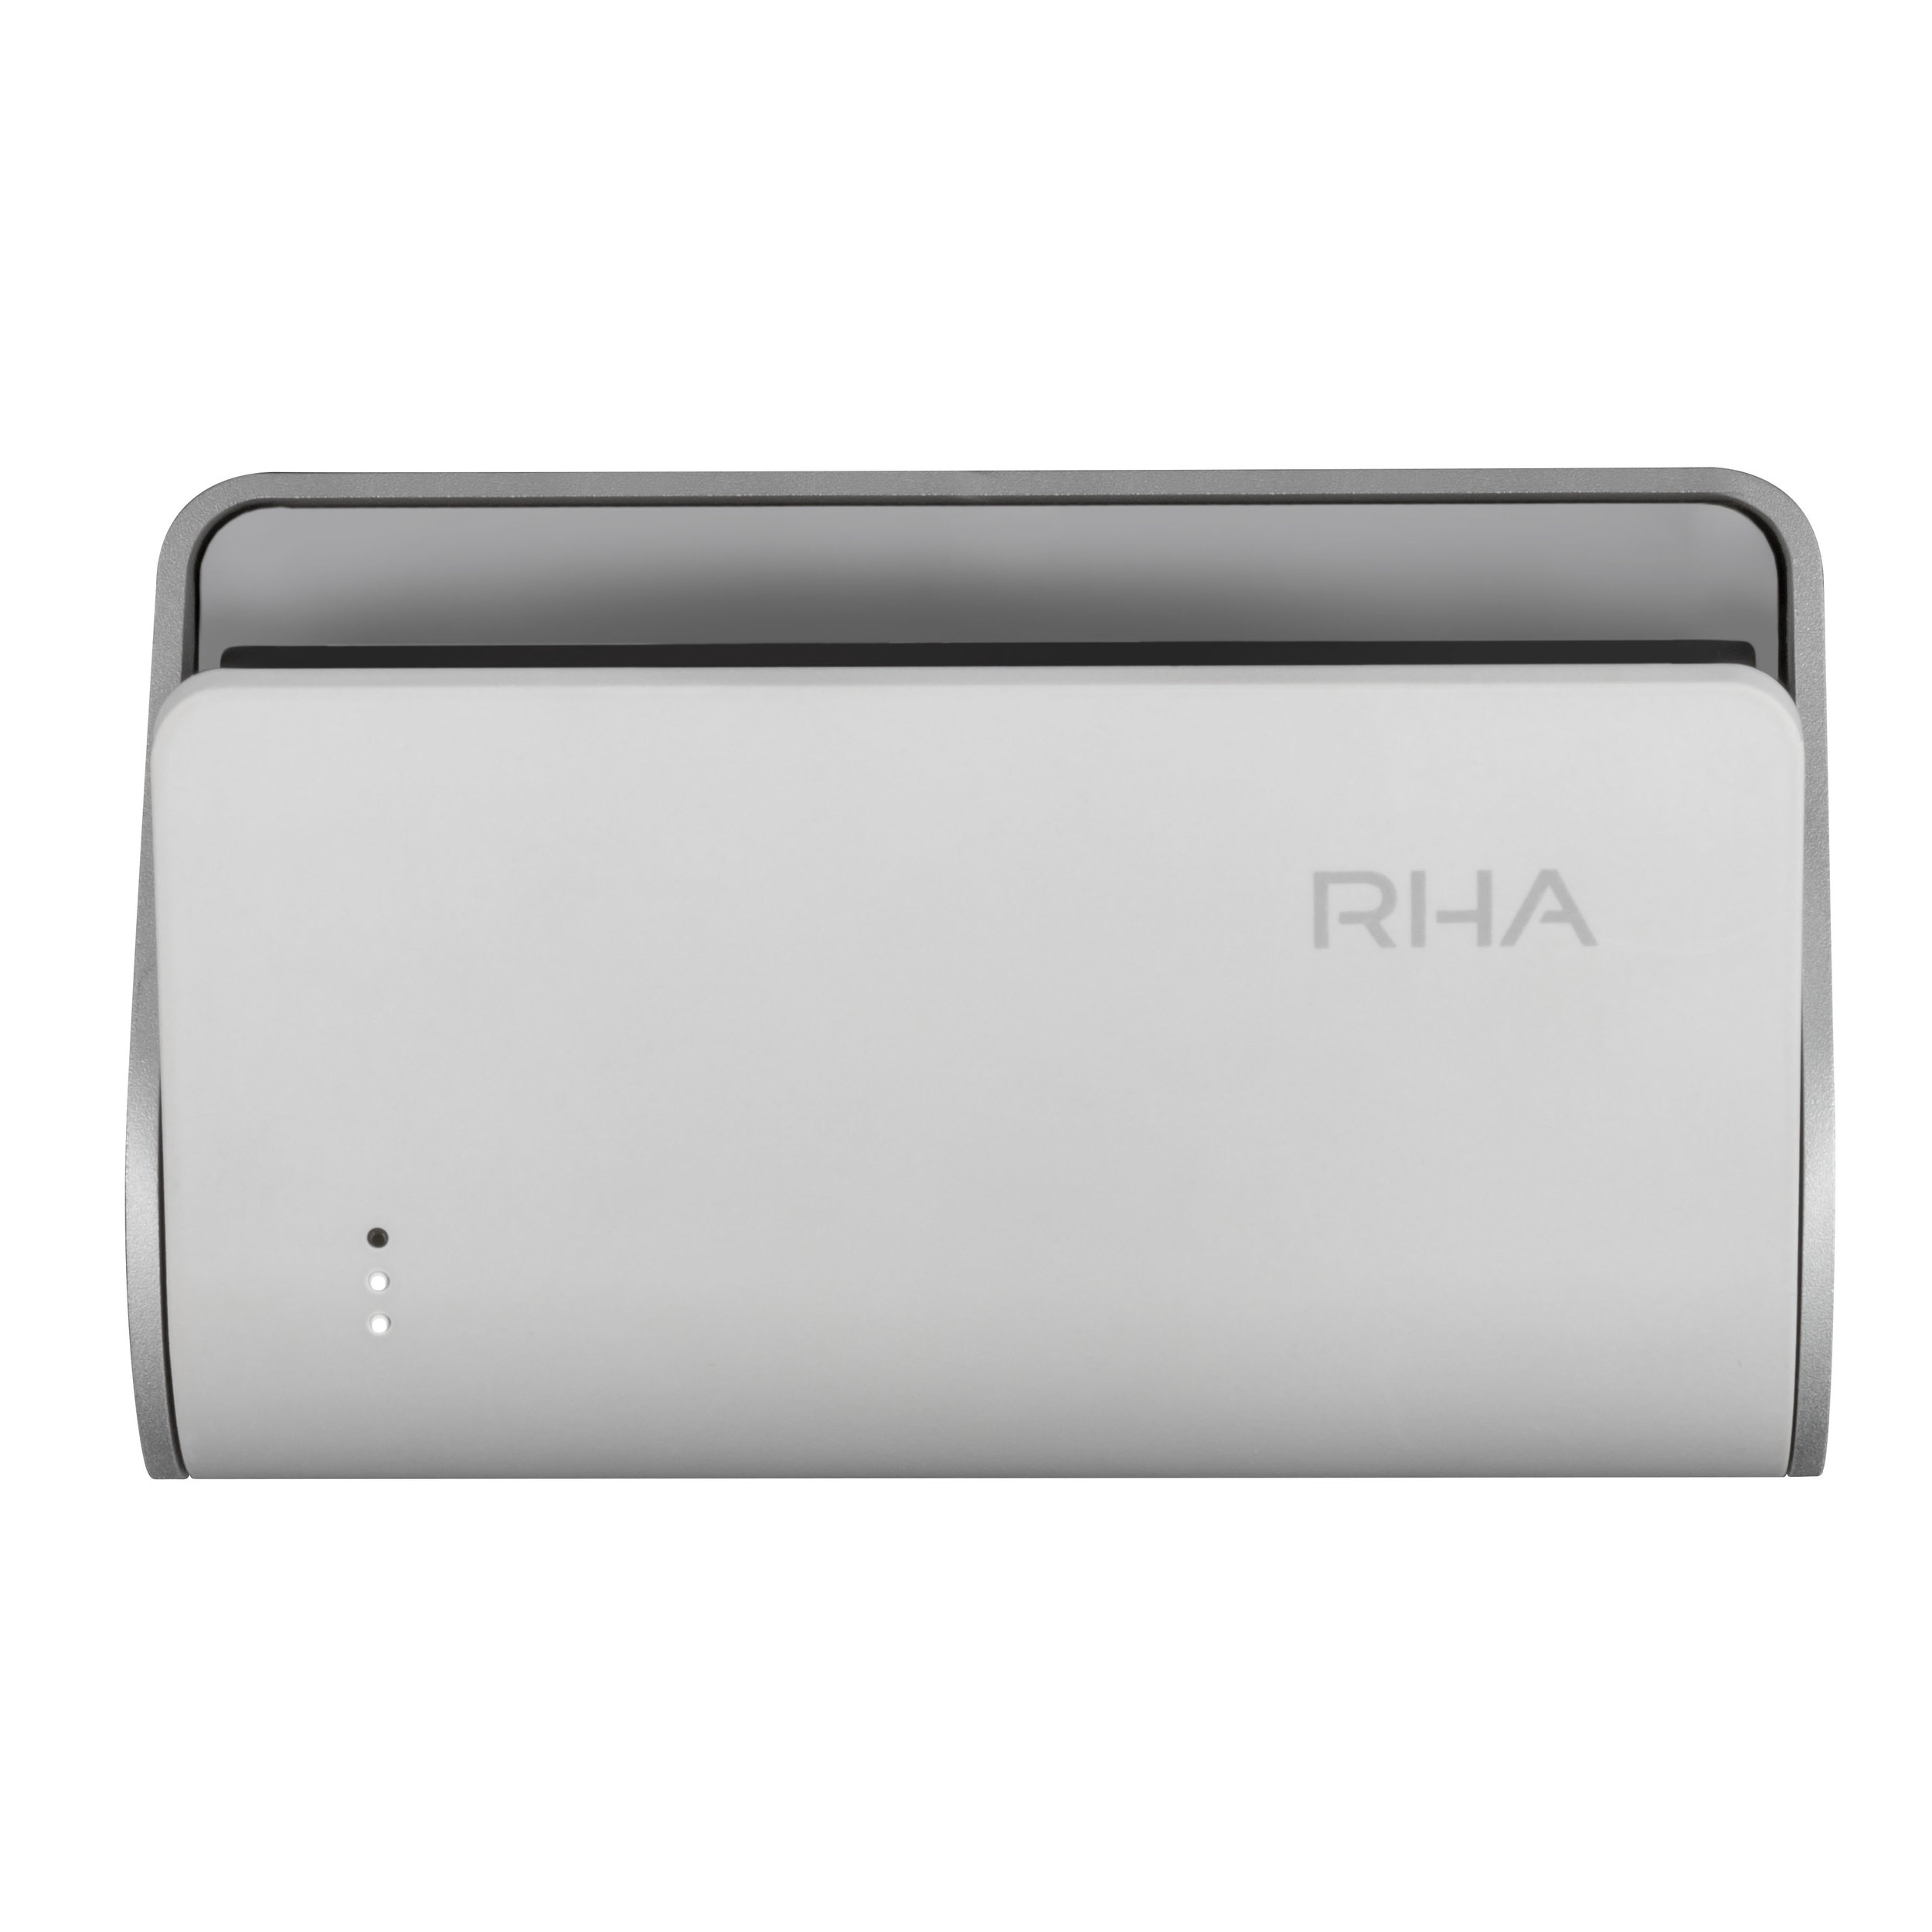 RHA_TrueConnectPackaging_190508_MRP_0039.jpg